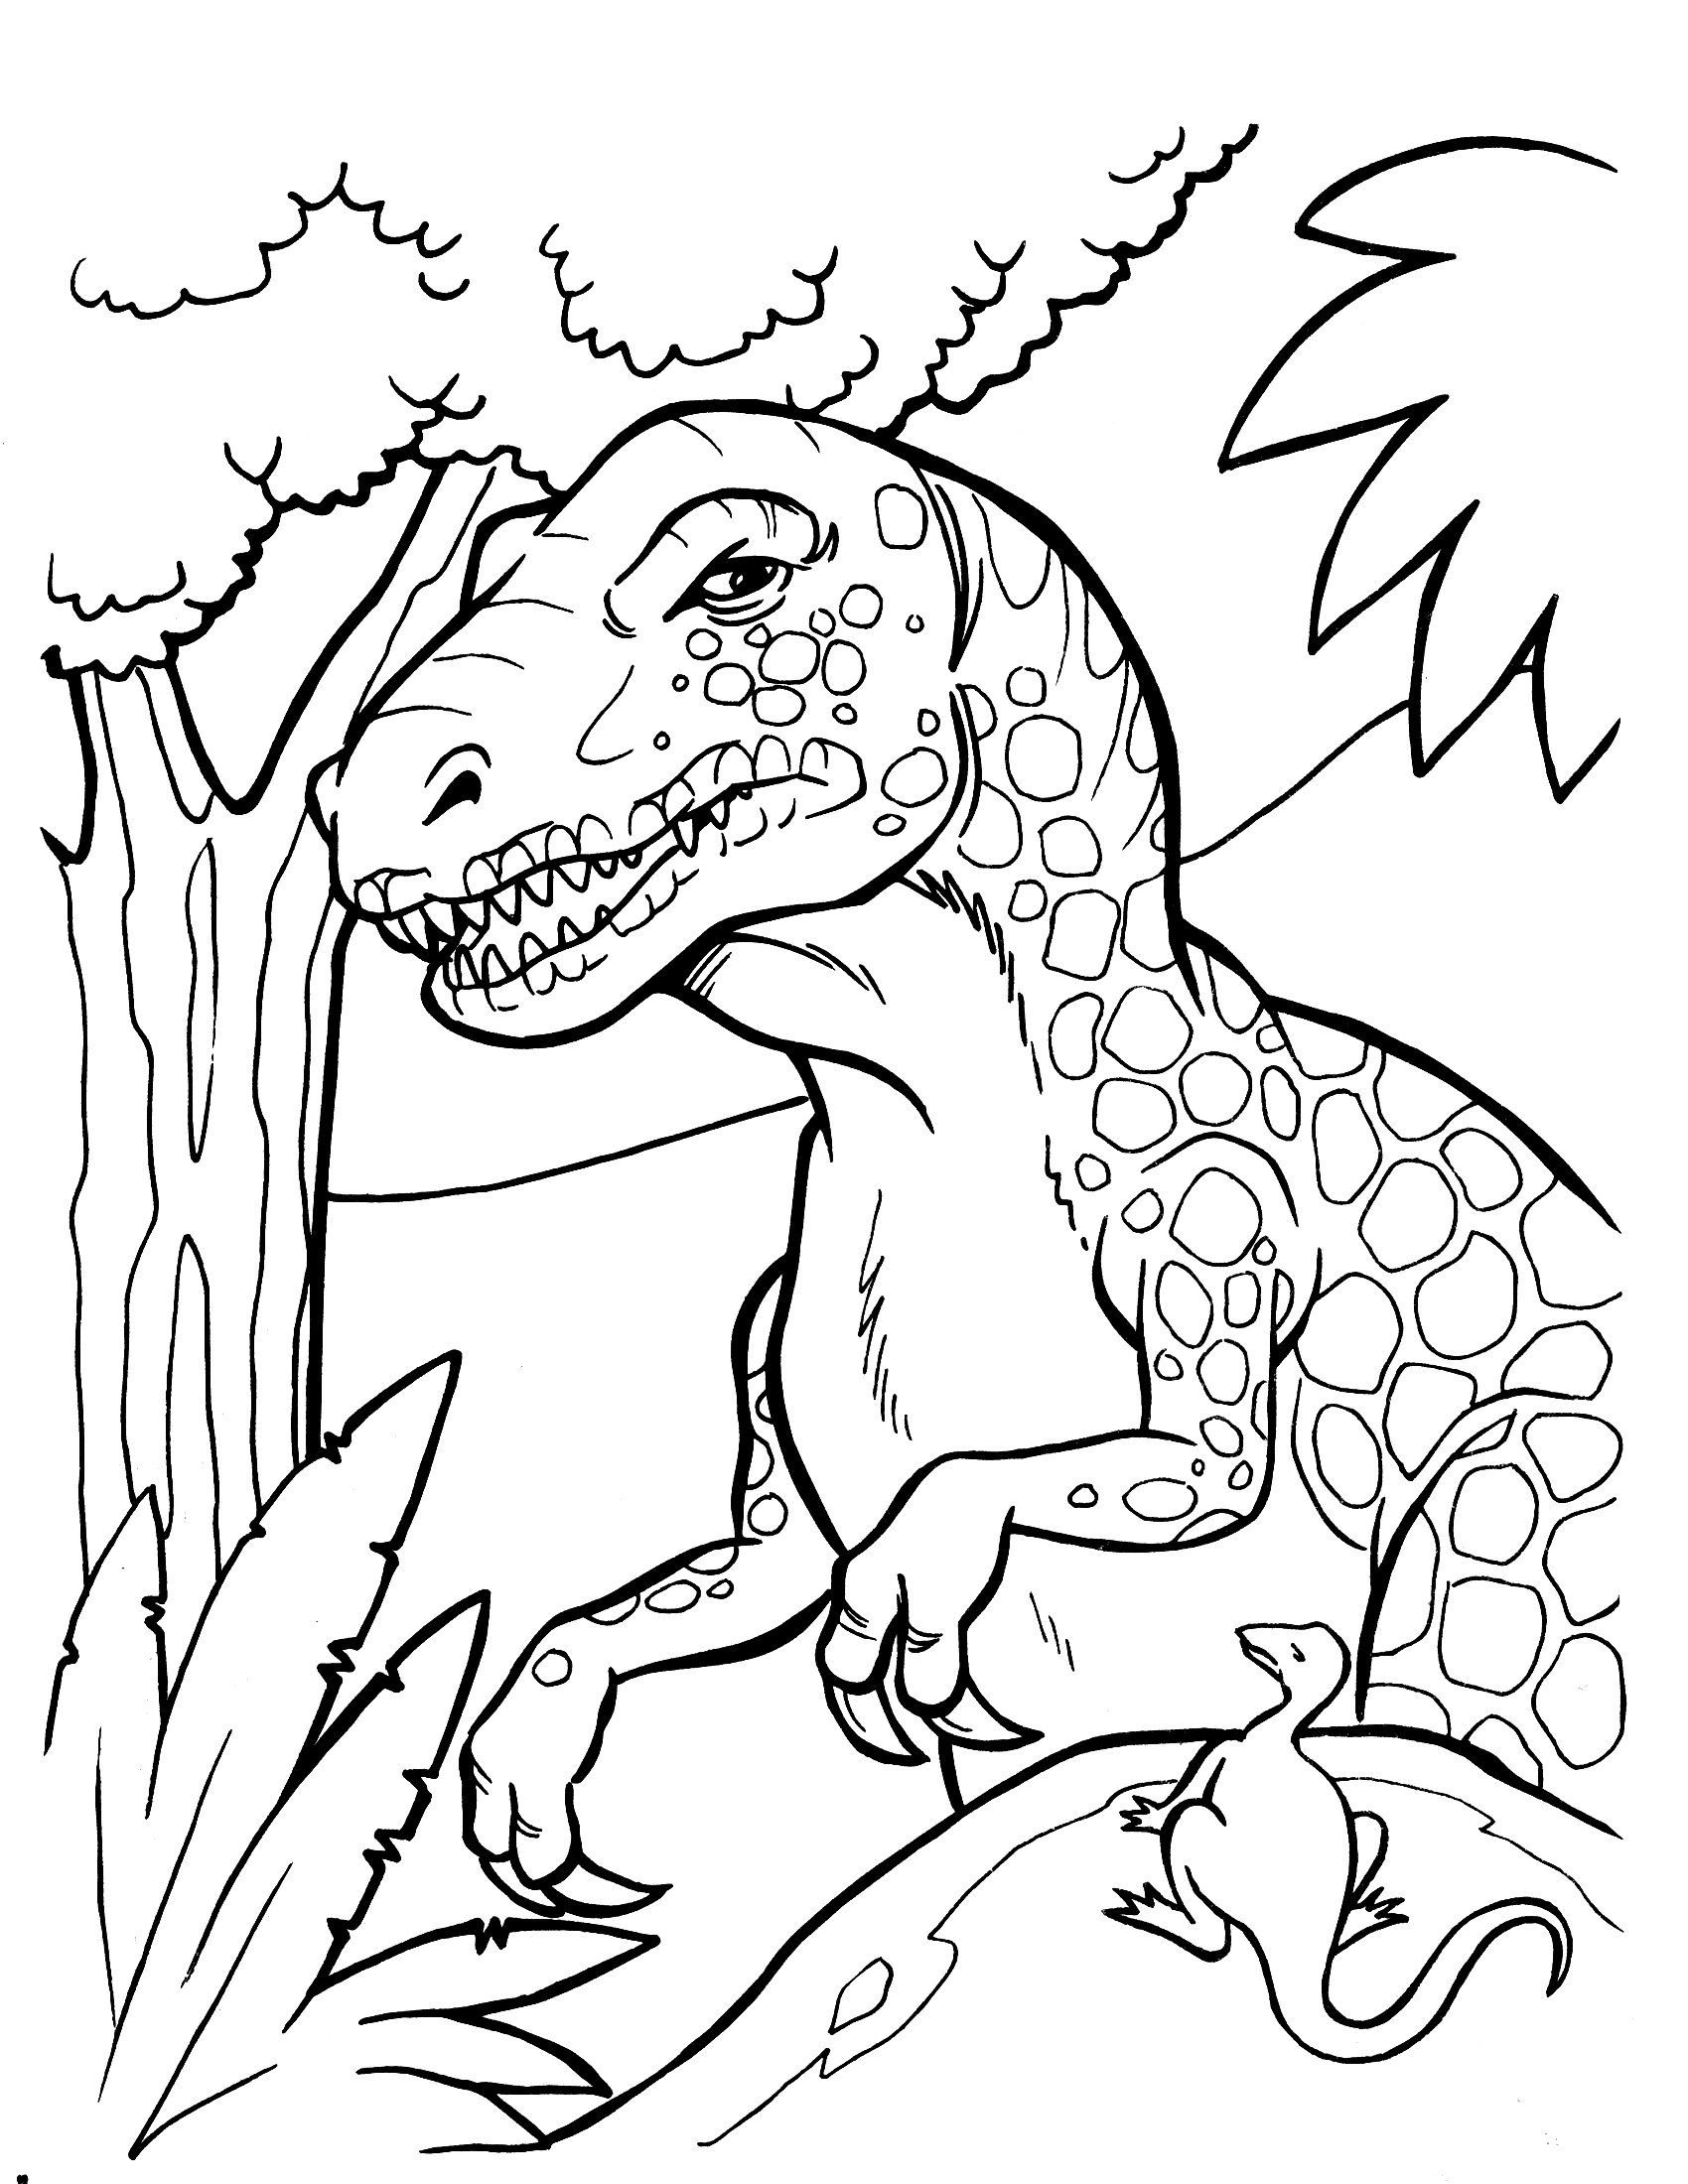 dinosaurs color pages printable dinosaur coloring pages for kids cool2bkids pages dinosaurs color